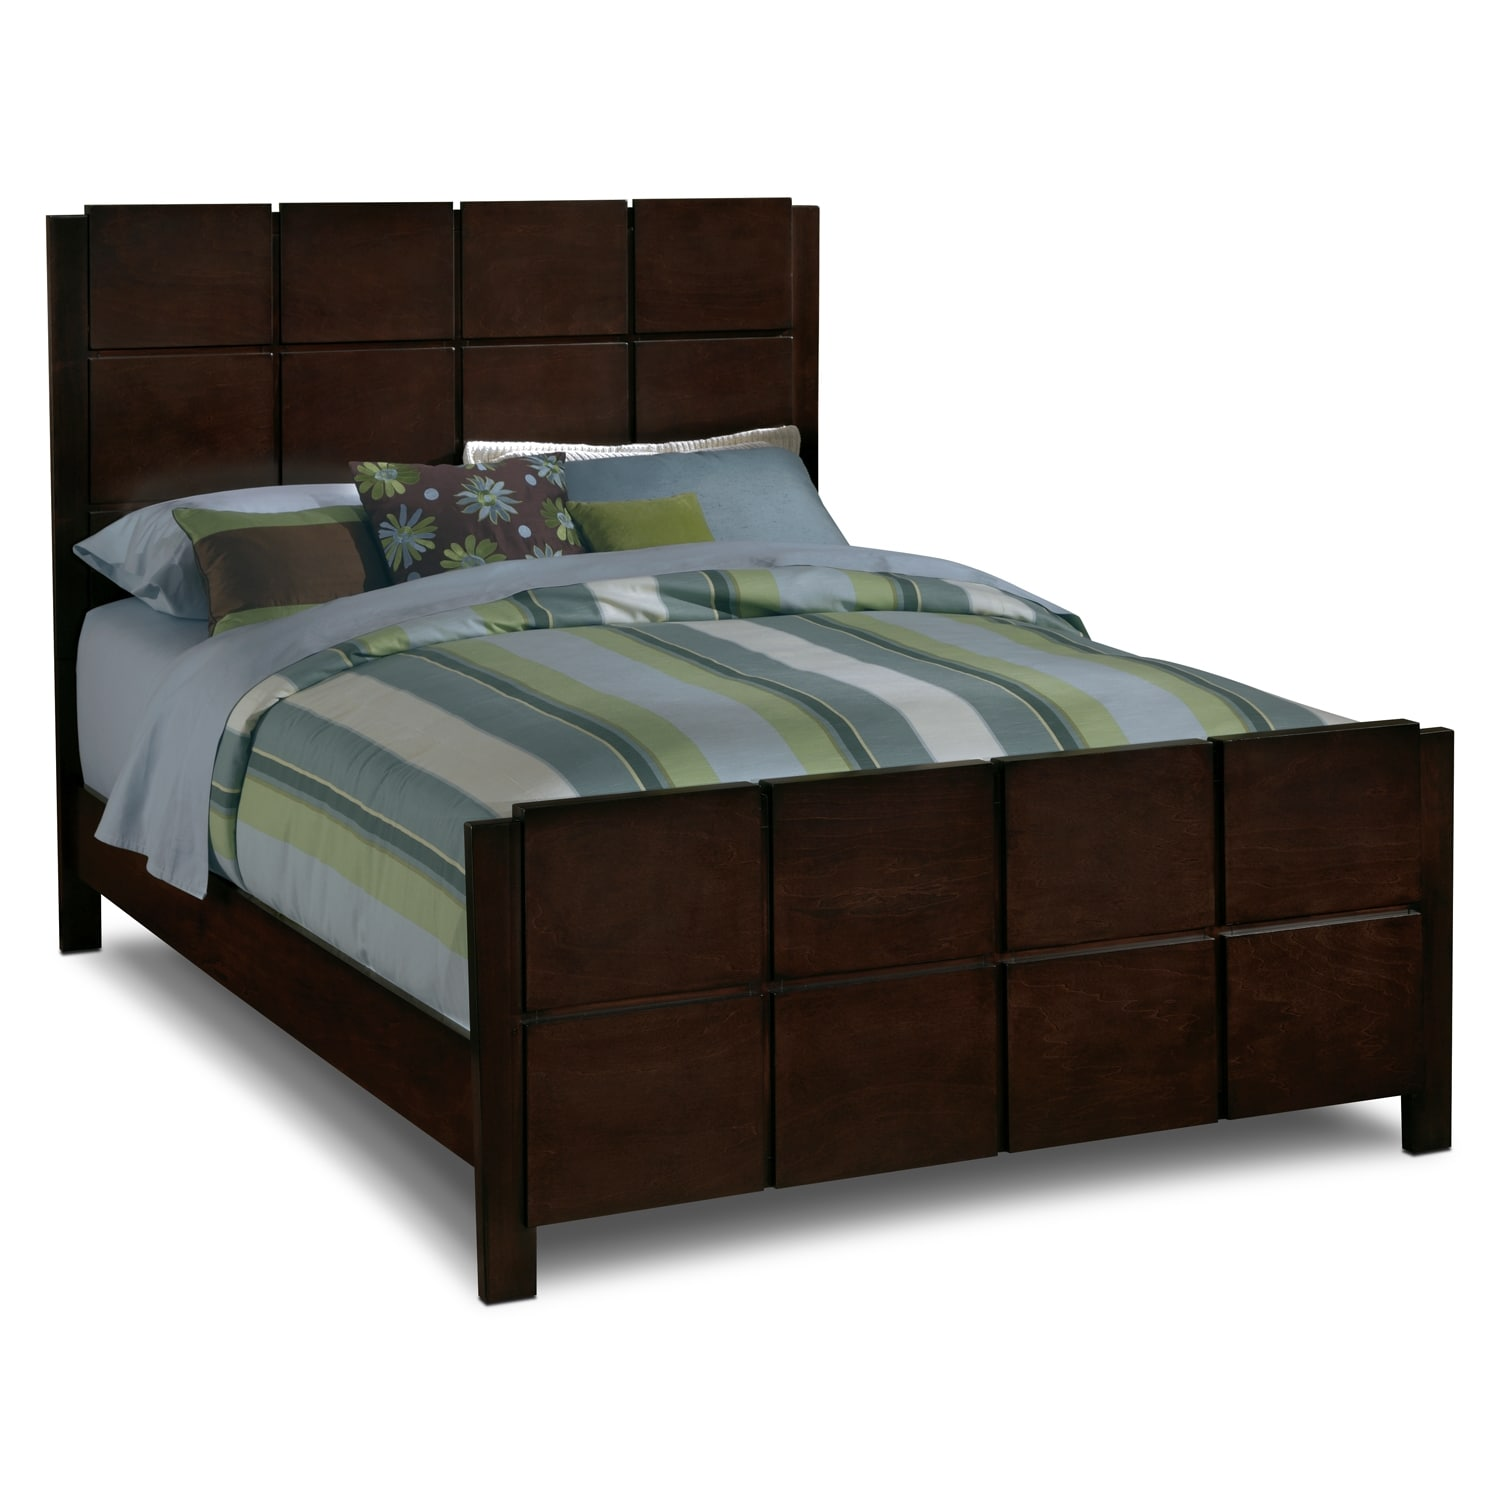 Bedroom Furniture - Mosaic King Bed - Dark Brown